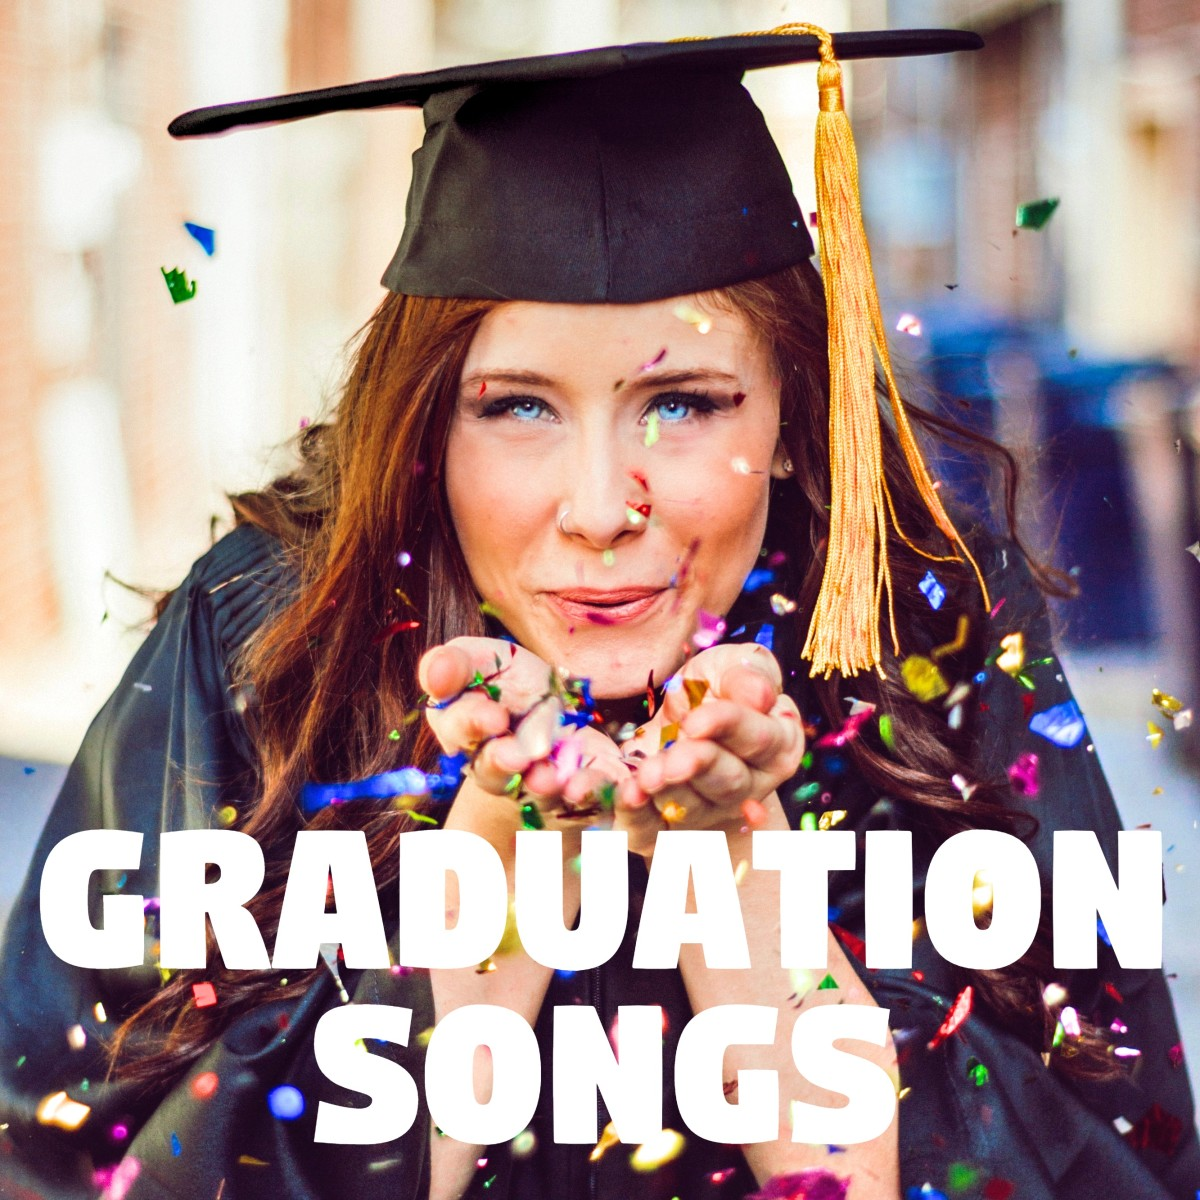 106 Best Graduation Songs That Celebrate the Moment